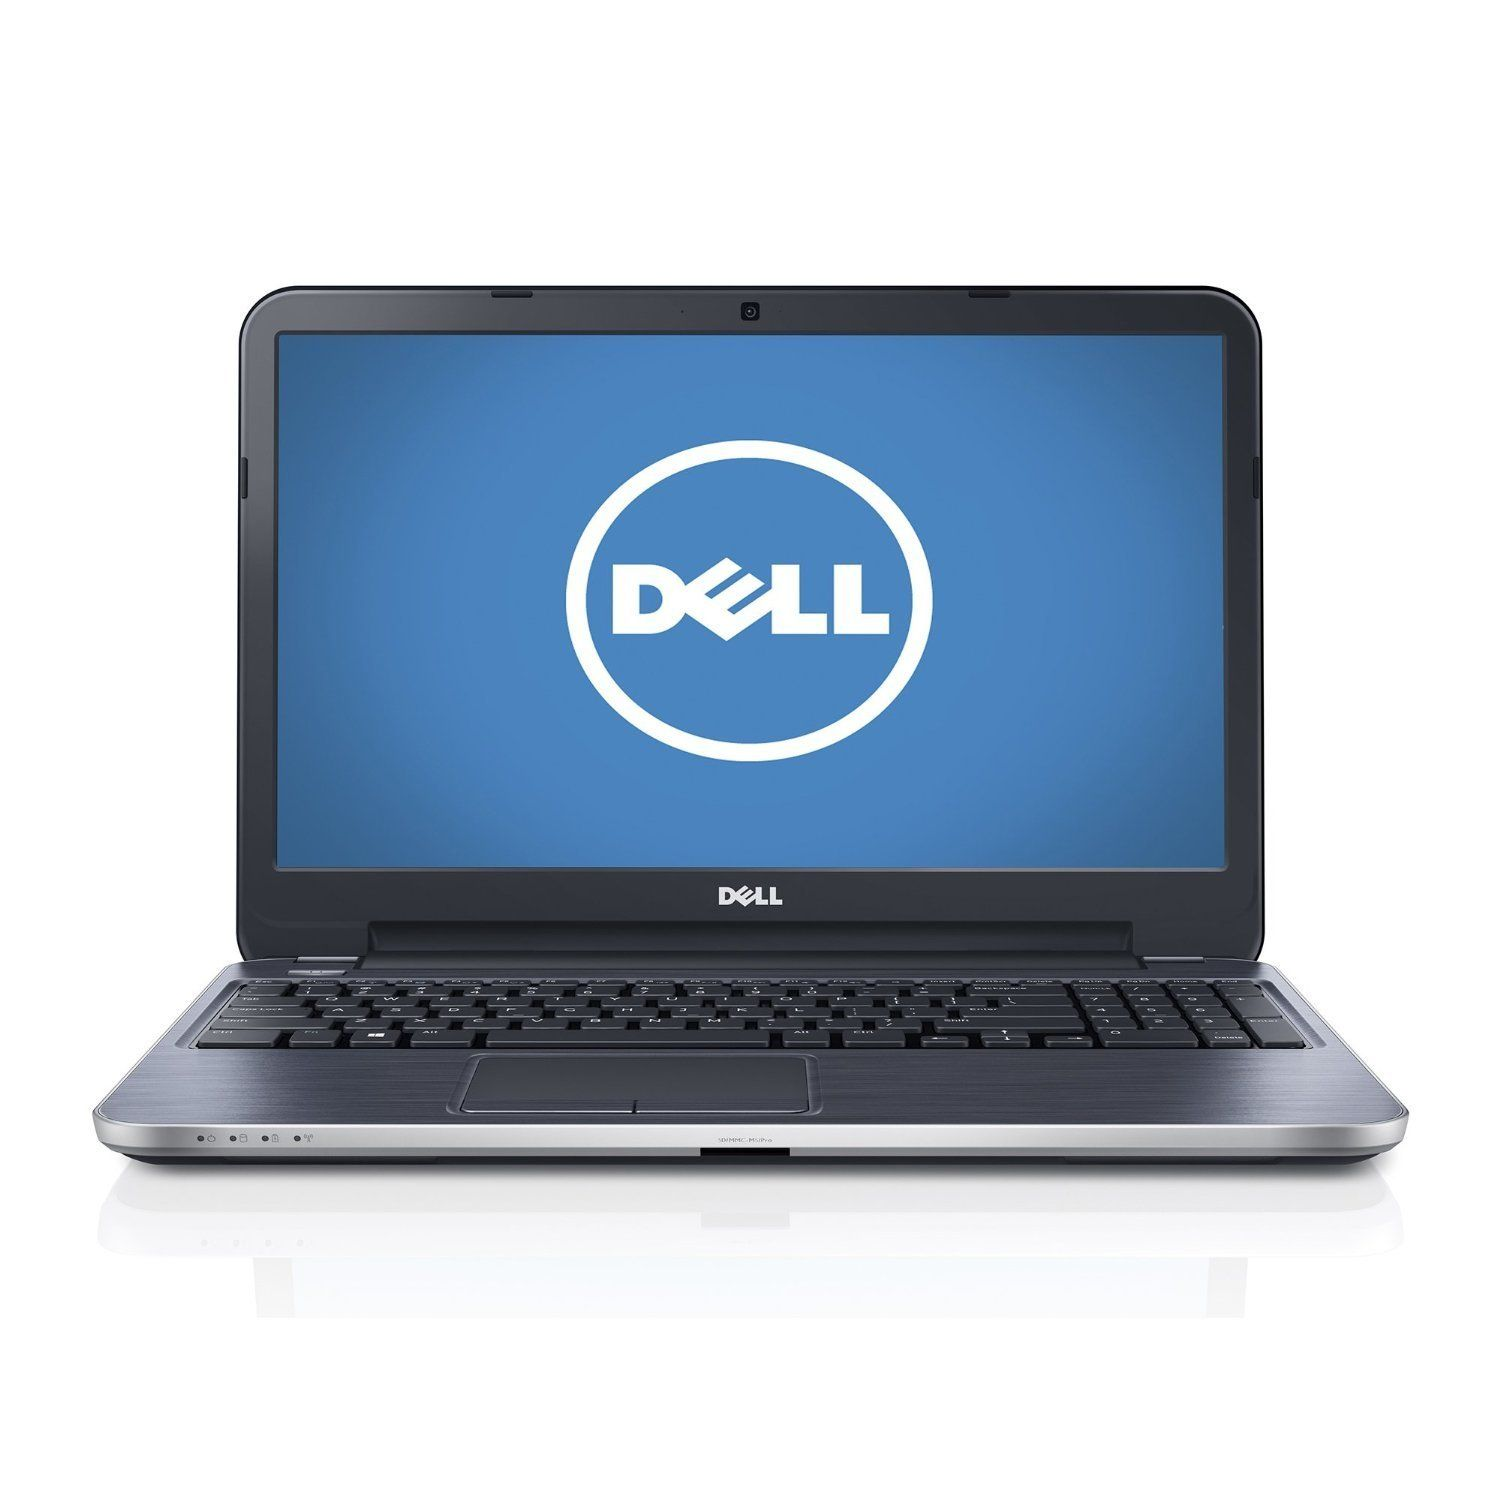 DELL LATITUDE 3540 LAPTOP Reviews, Specification, Battery, Price